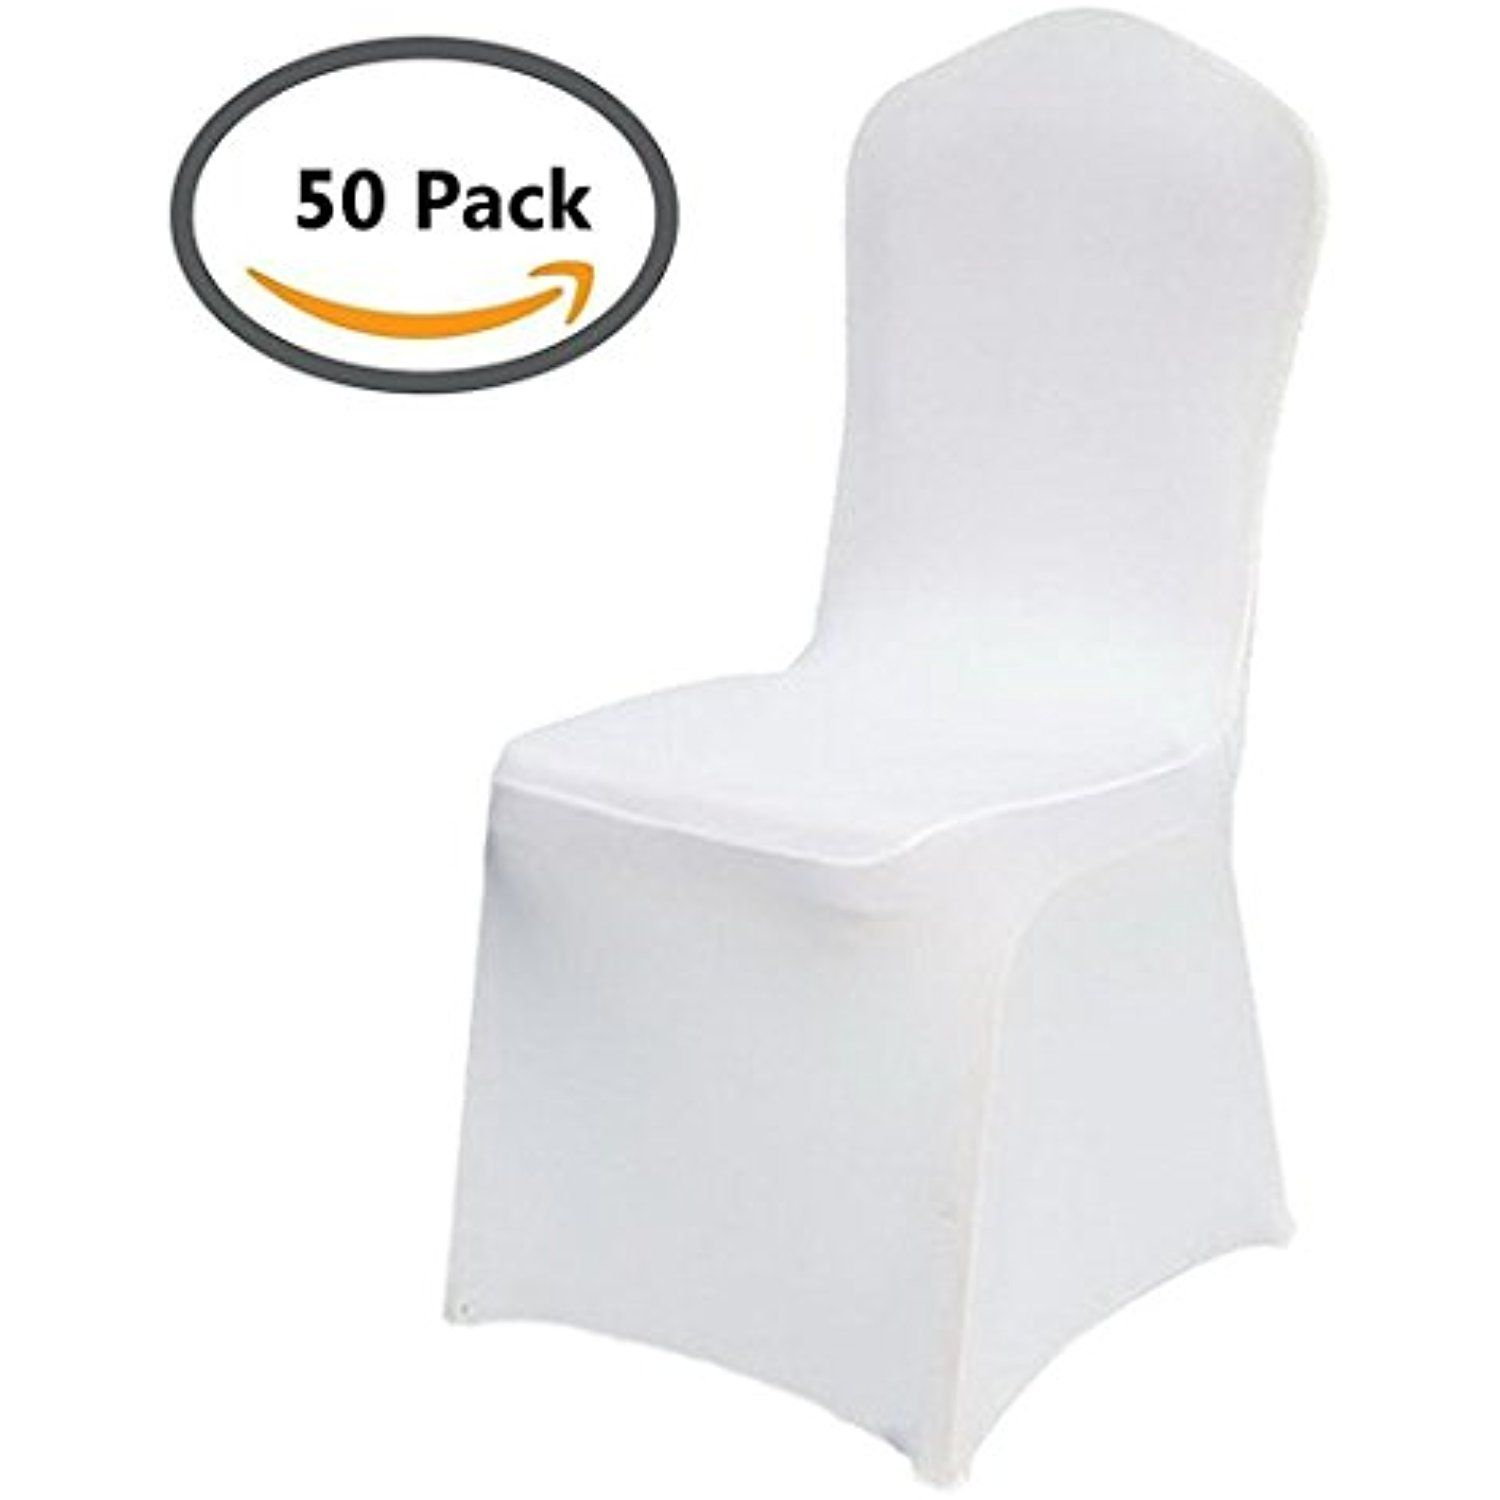 50pcs Universal Lycra Spandex Chair Covers for Wedding Hotel Party